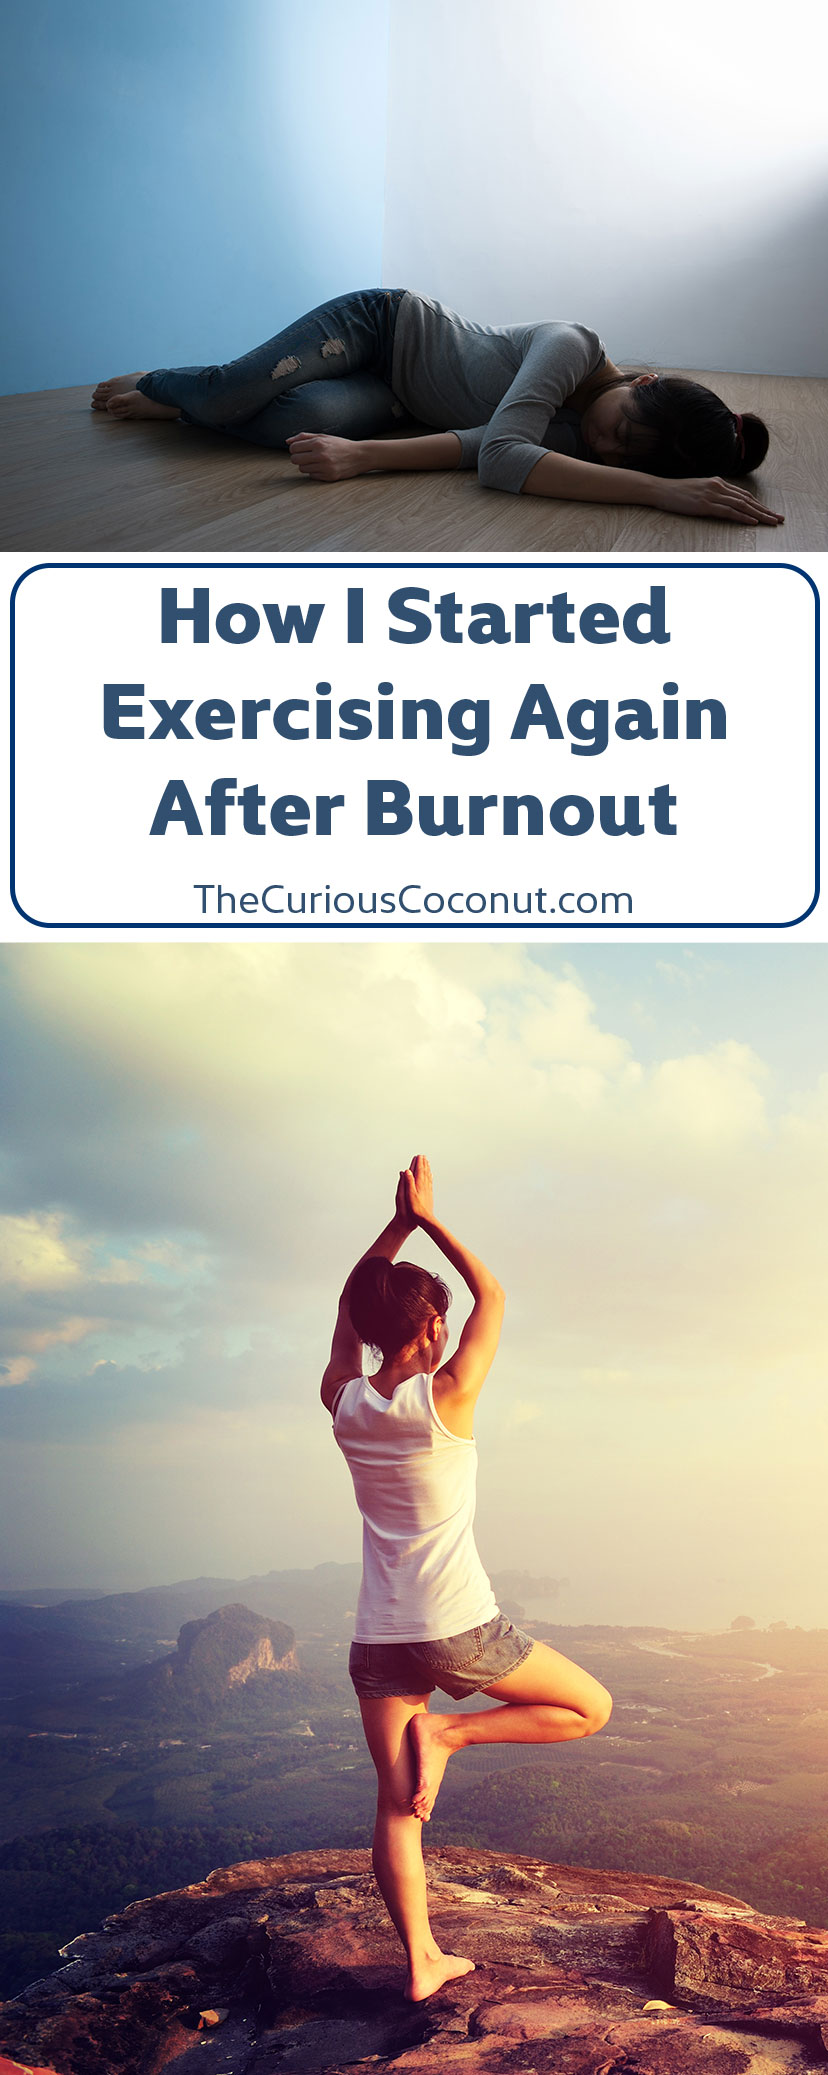 How I Started Exercising Again After Burnout // TheCuriousCoconut.com